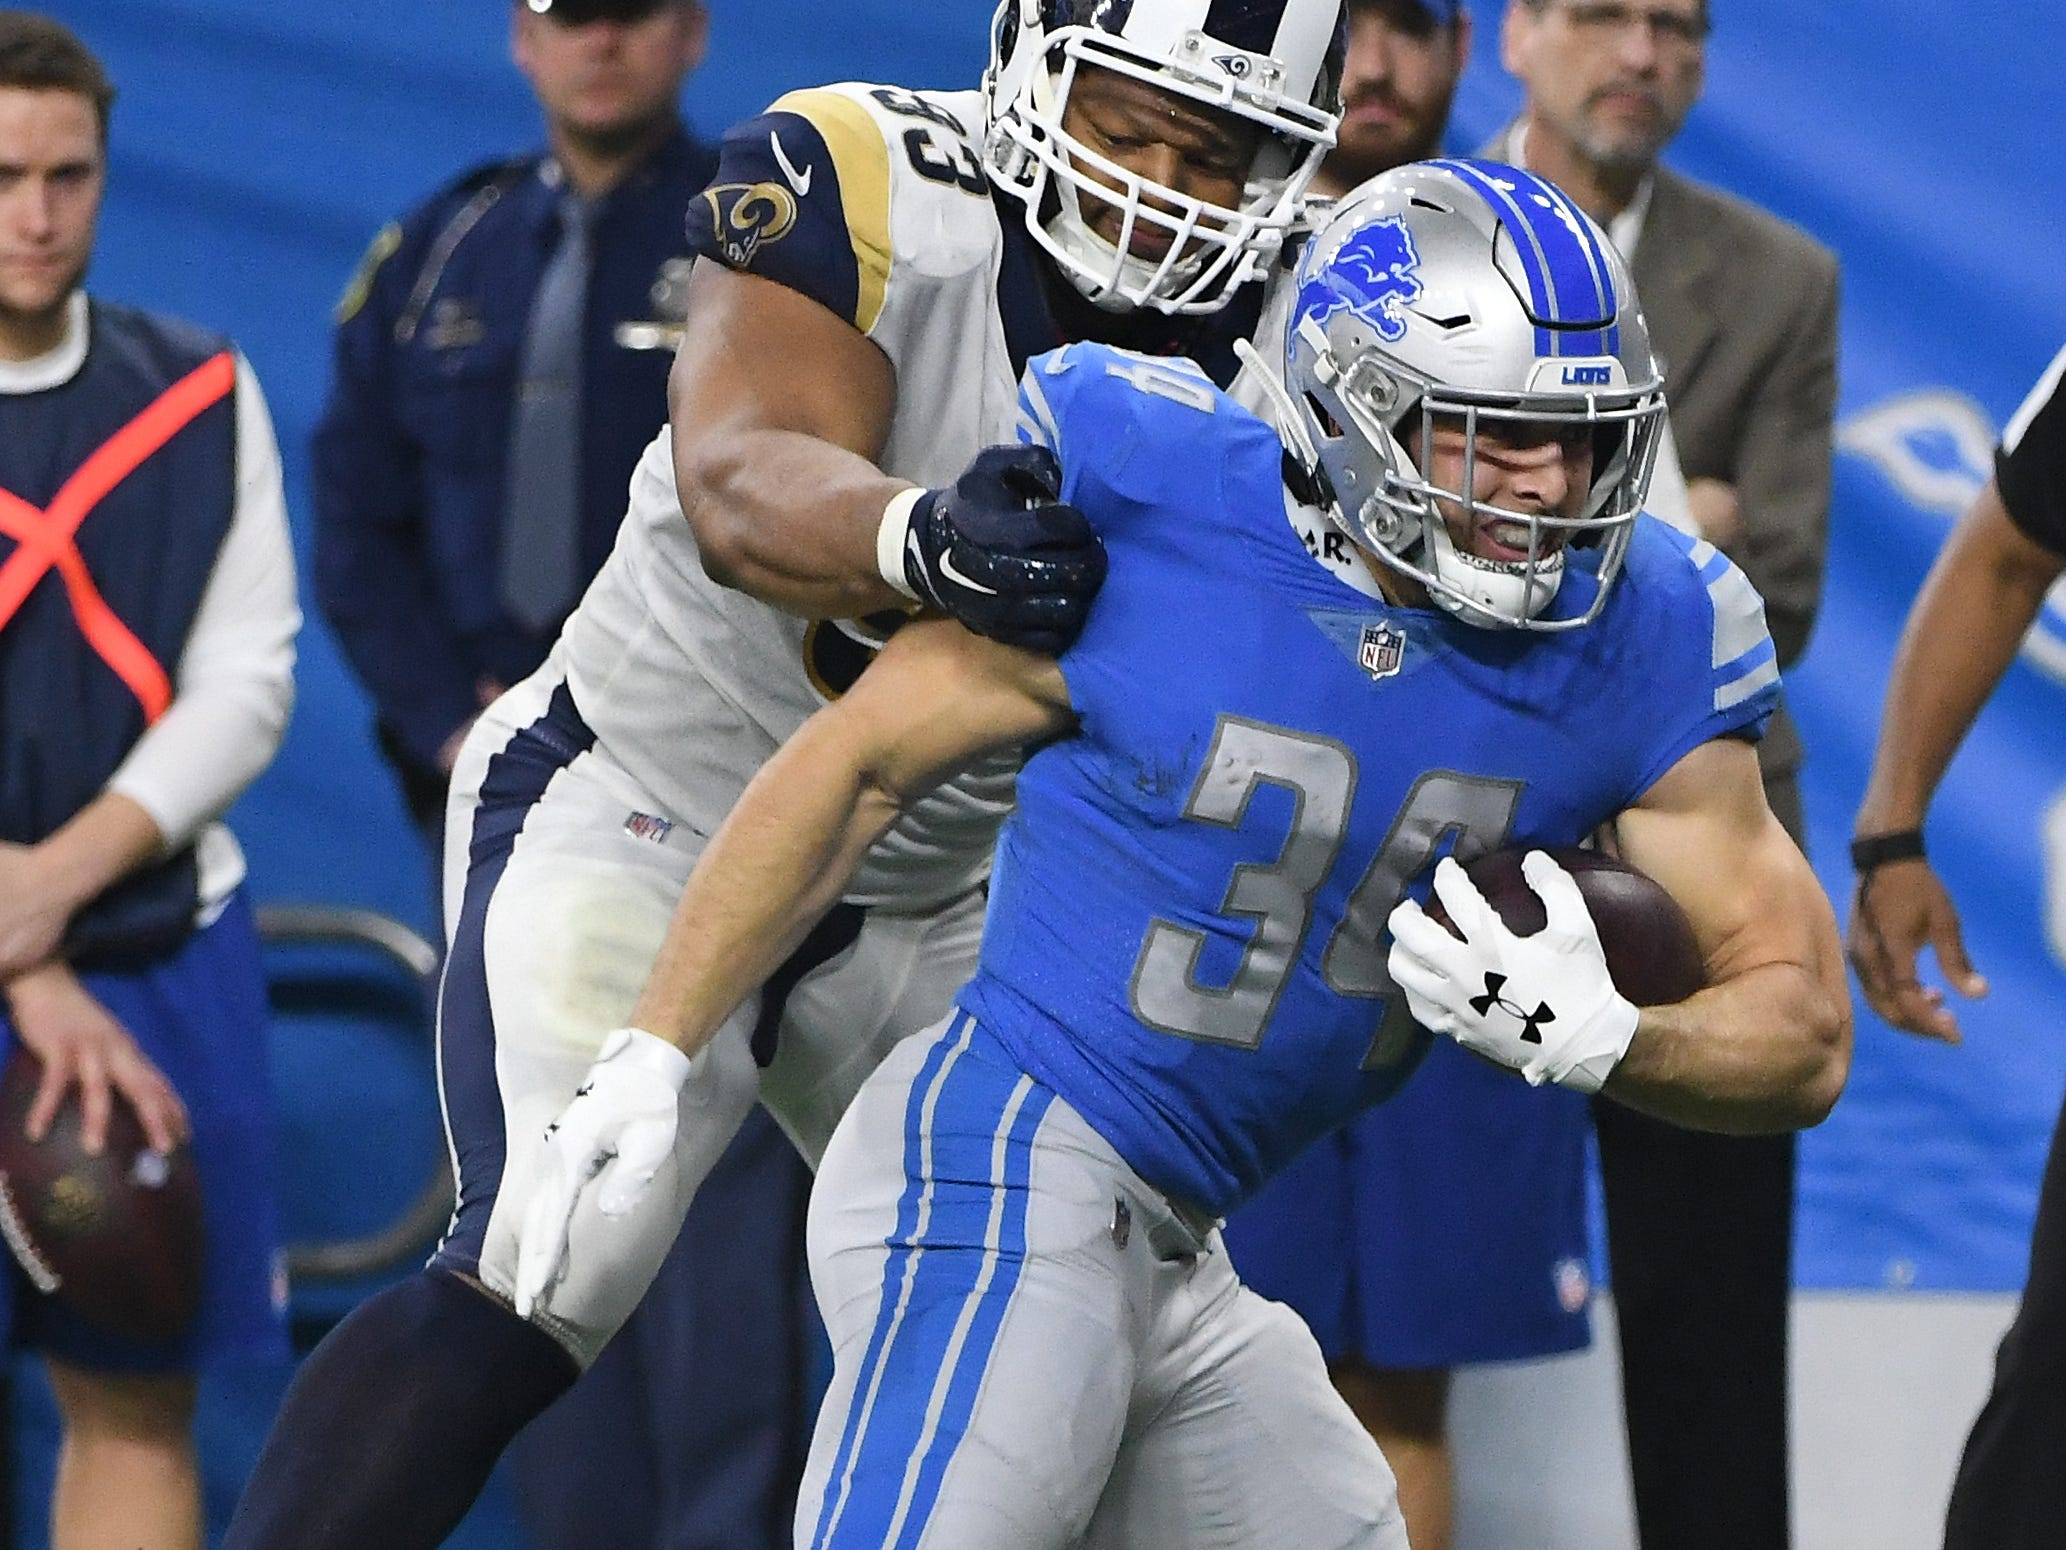 RB Zach Zenner: Rejoining the Lions late in the year after breaking two bones in his back during the preseason, Zenner was the team's best ball carrier down the stretch. His no-nonsense, north-south style meshed well with the Lions' revamped blocking scheme, resulting in a healthy 4.8 yards per pop on his 55 carries. Grade: B+